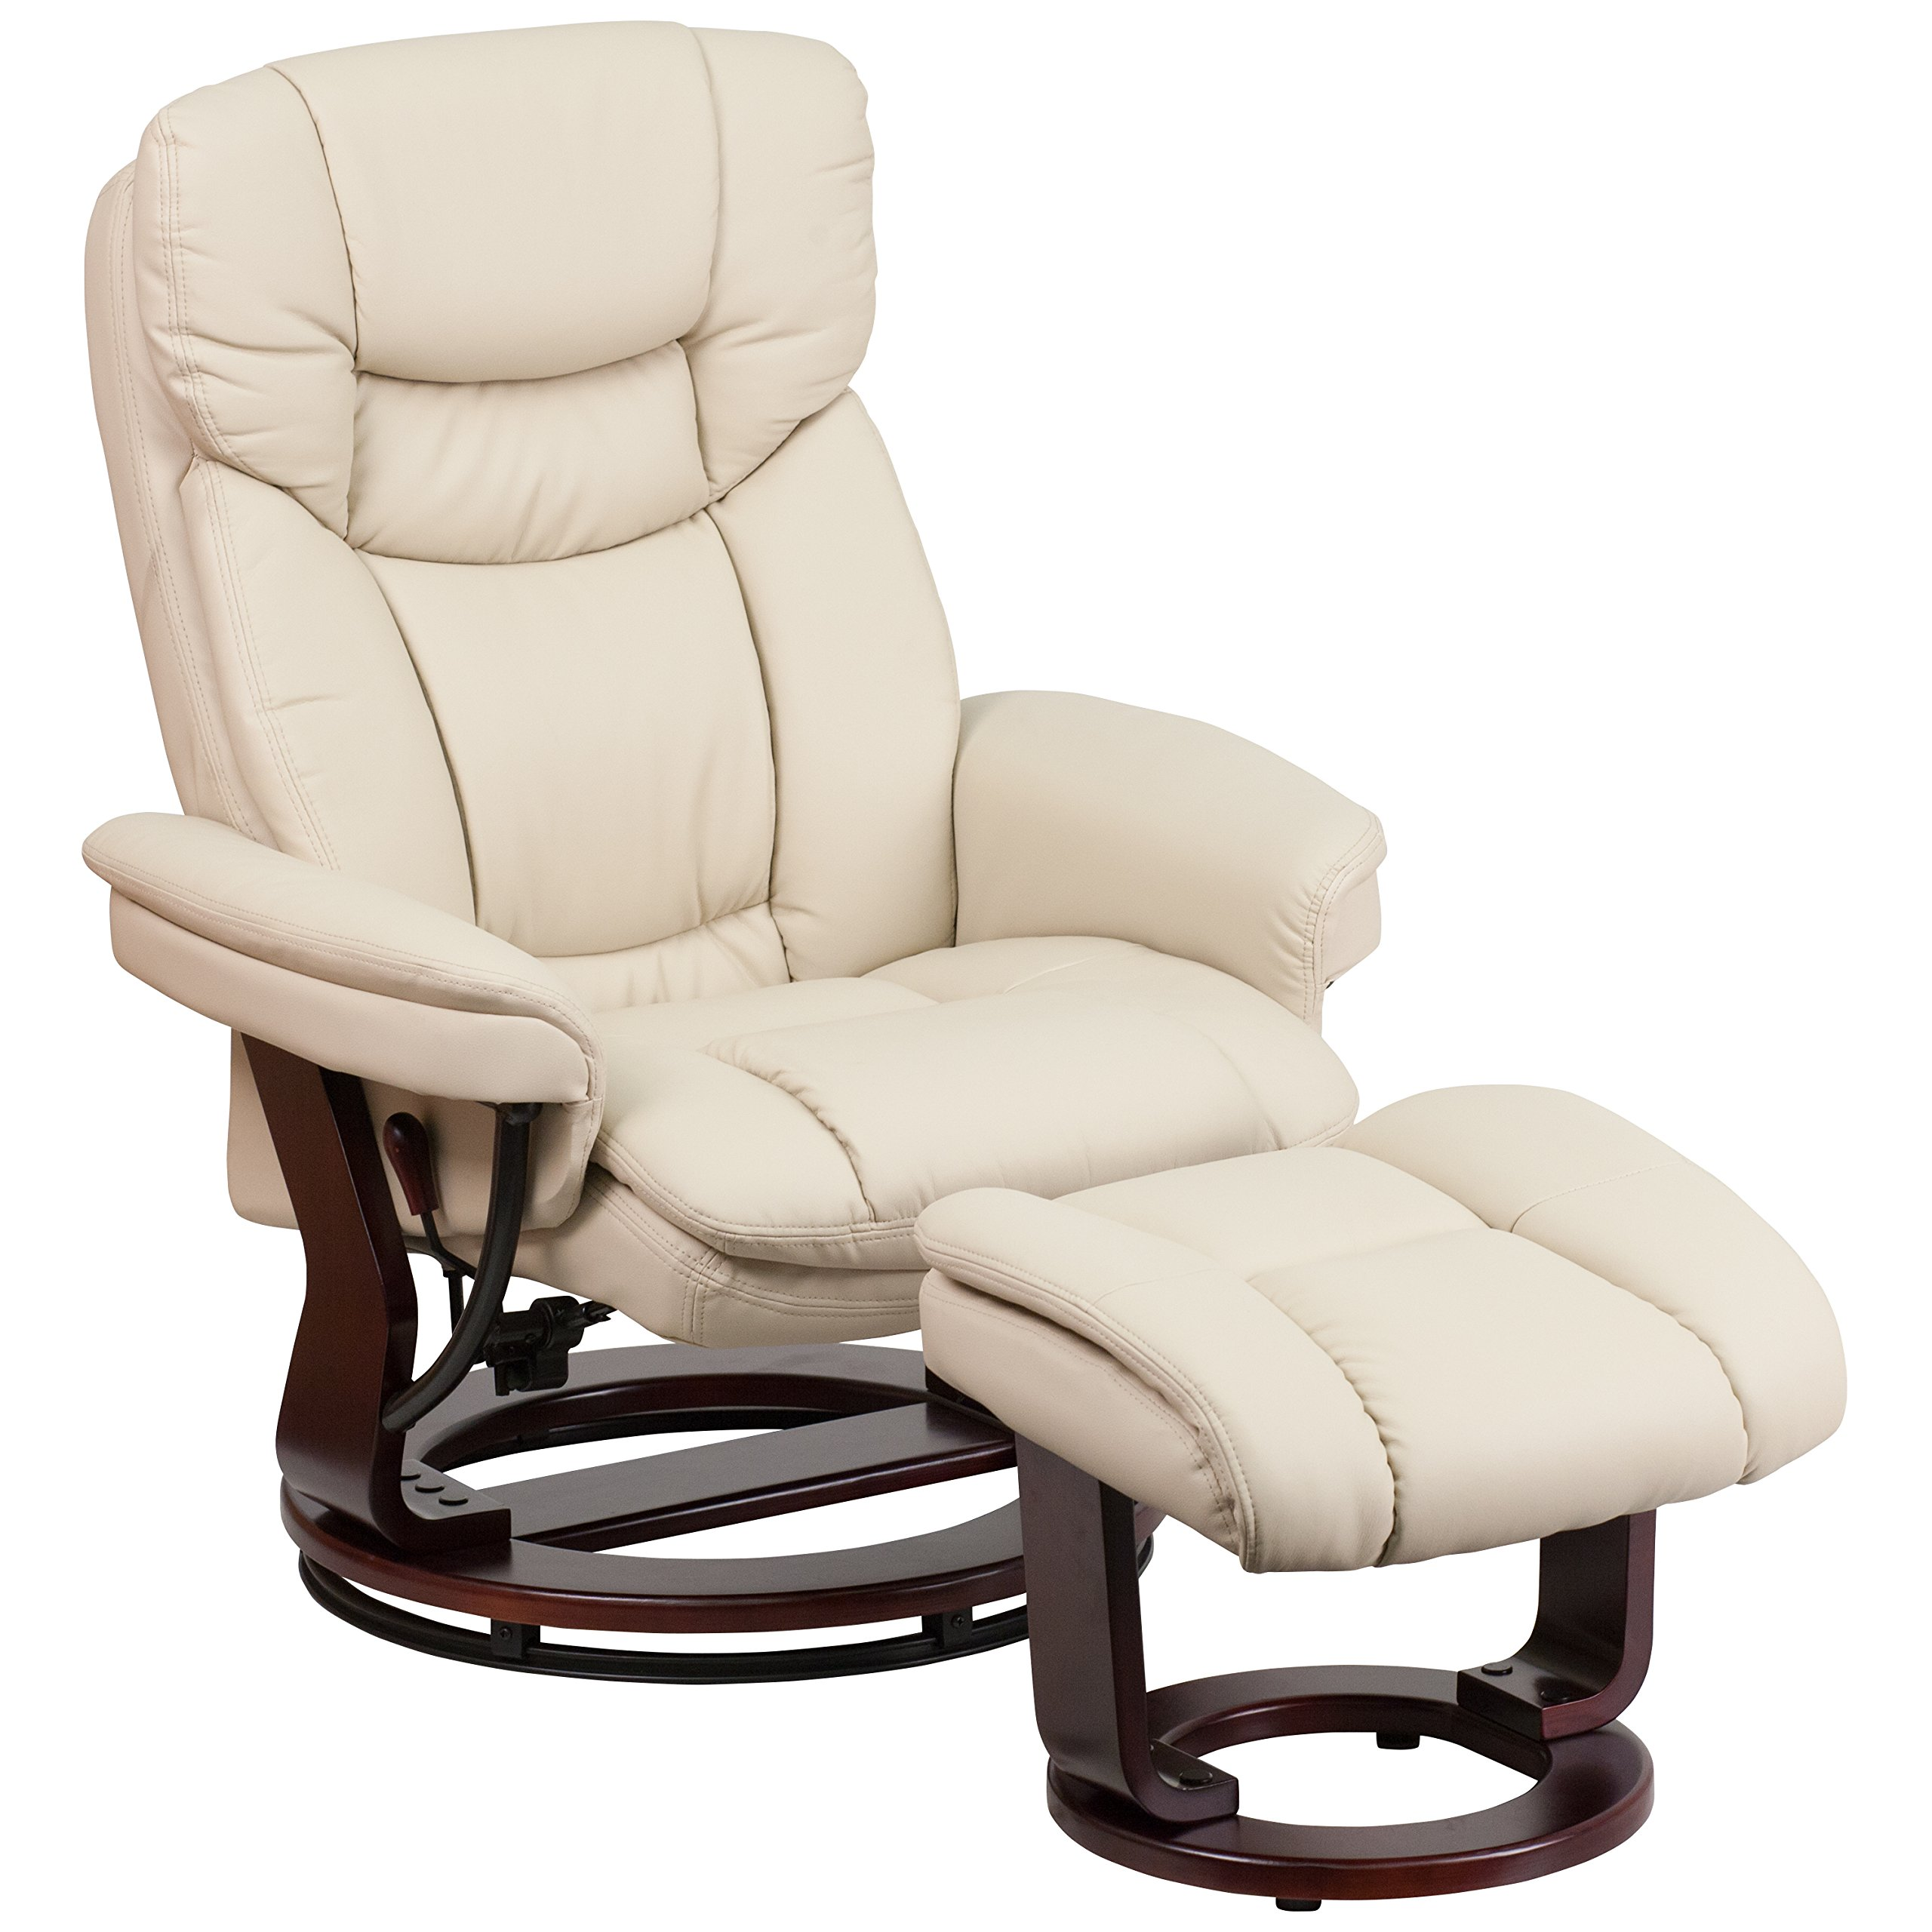 Flash Furniture Recliner Chair with Ottoman | Beige LeatherSoft Swivel Recliner Chair with Ottoman Footrest by Flash Furniture